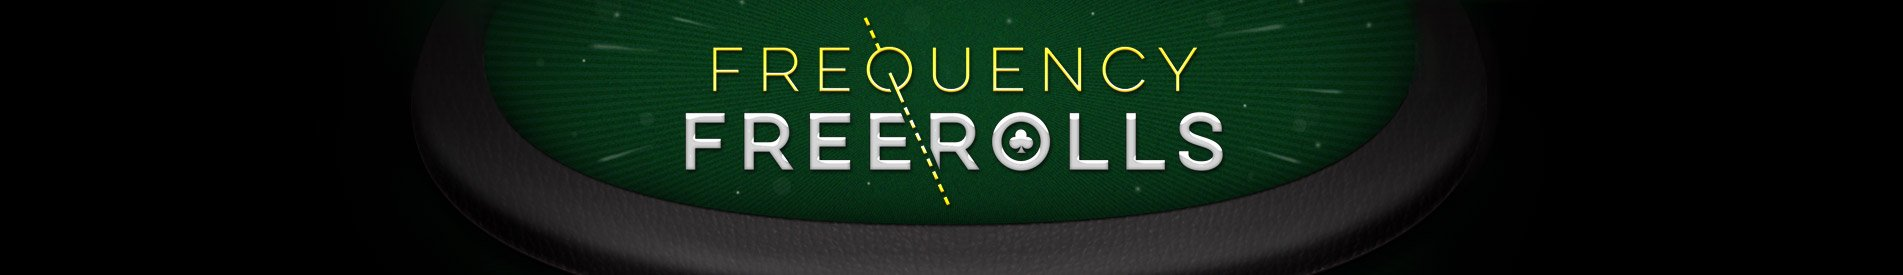 Online Real Money Poker Freerolls Promotions